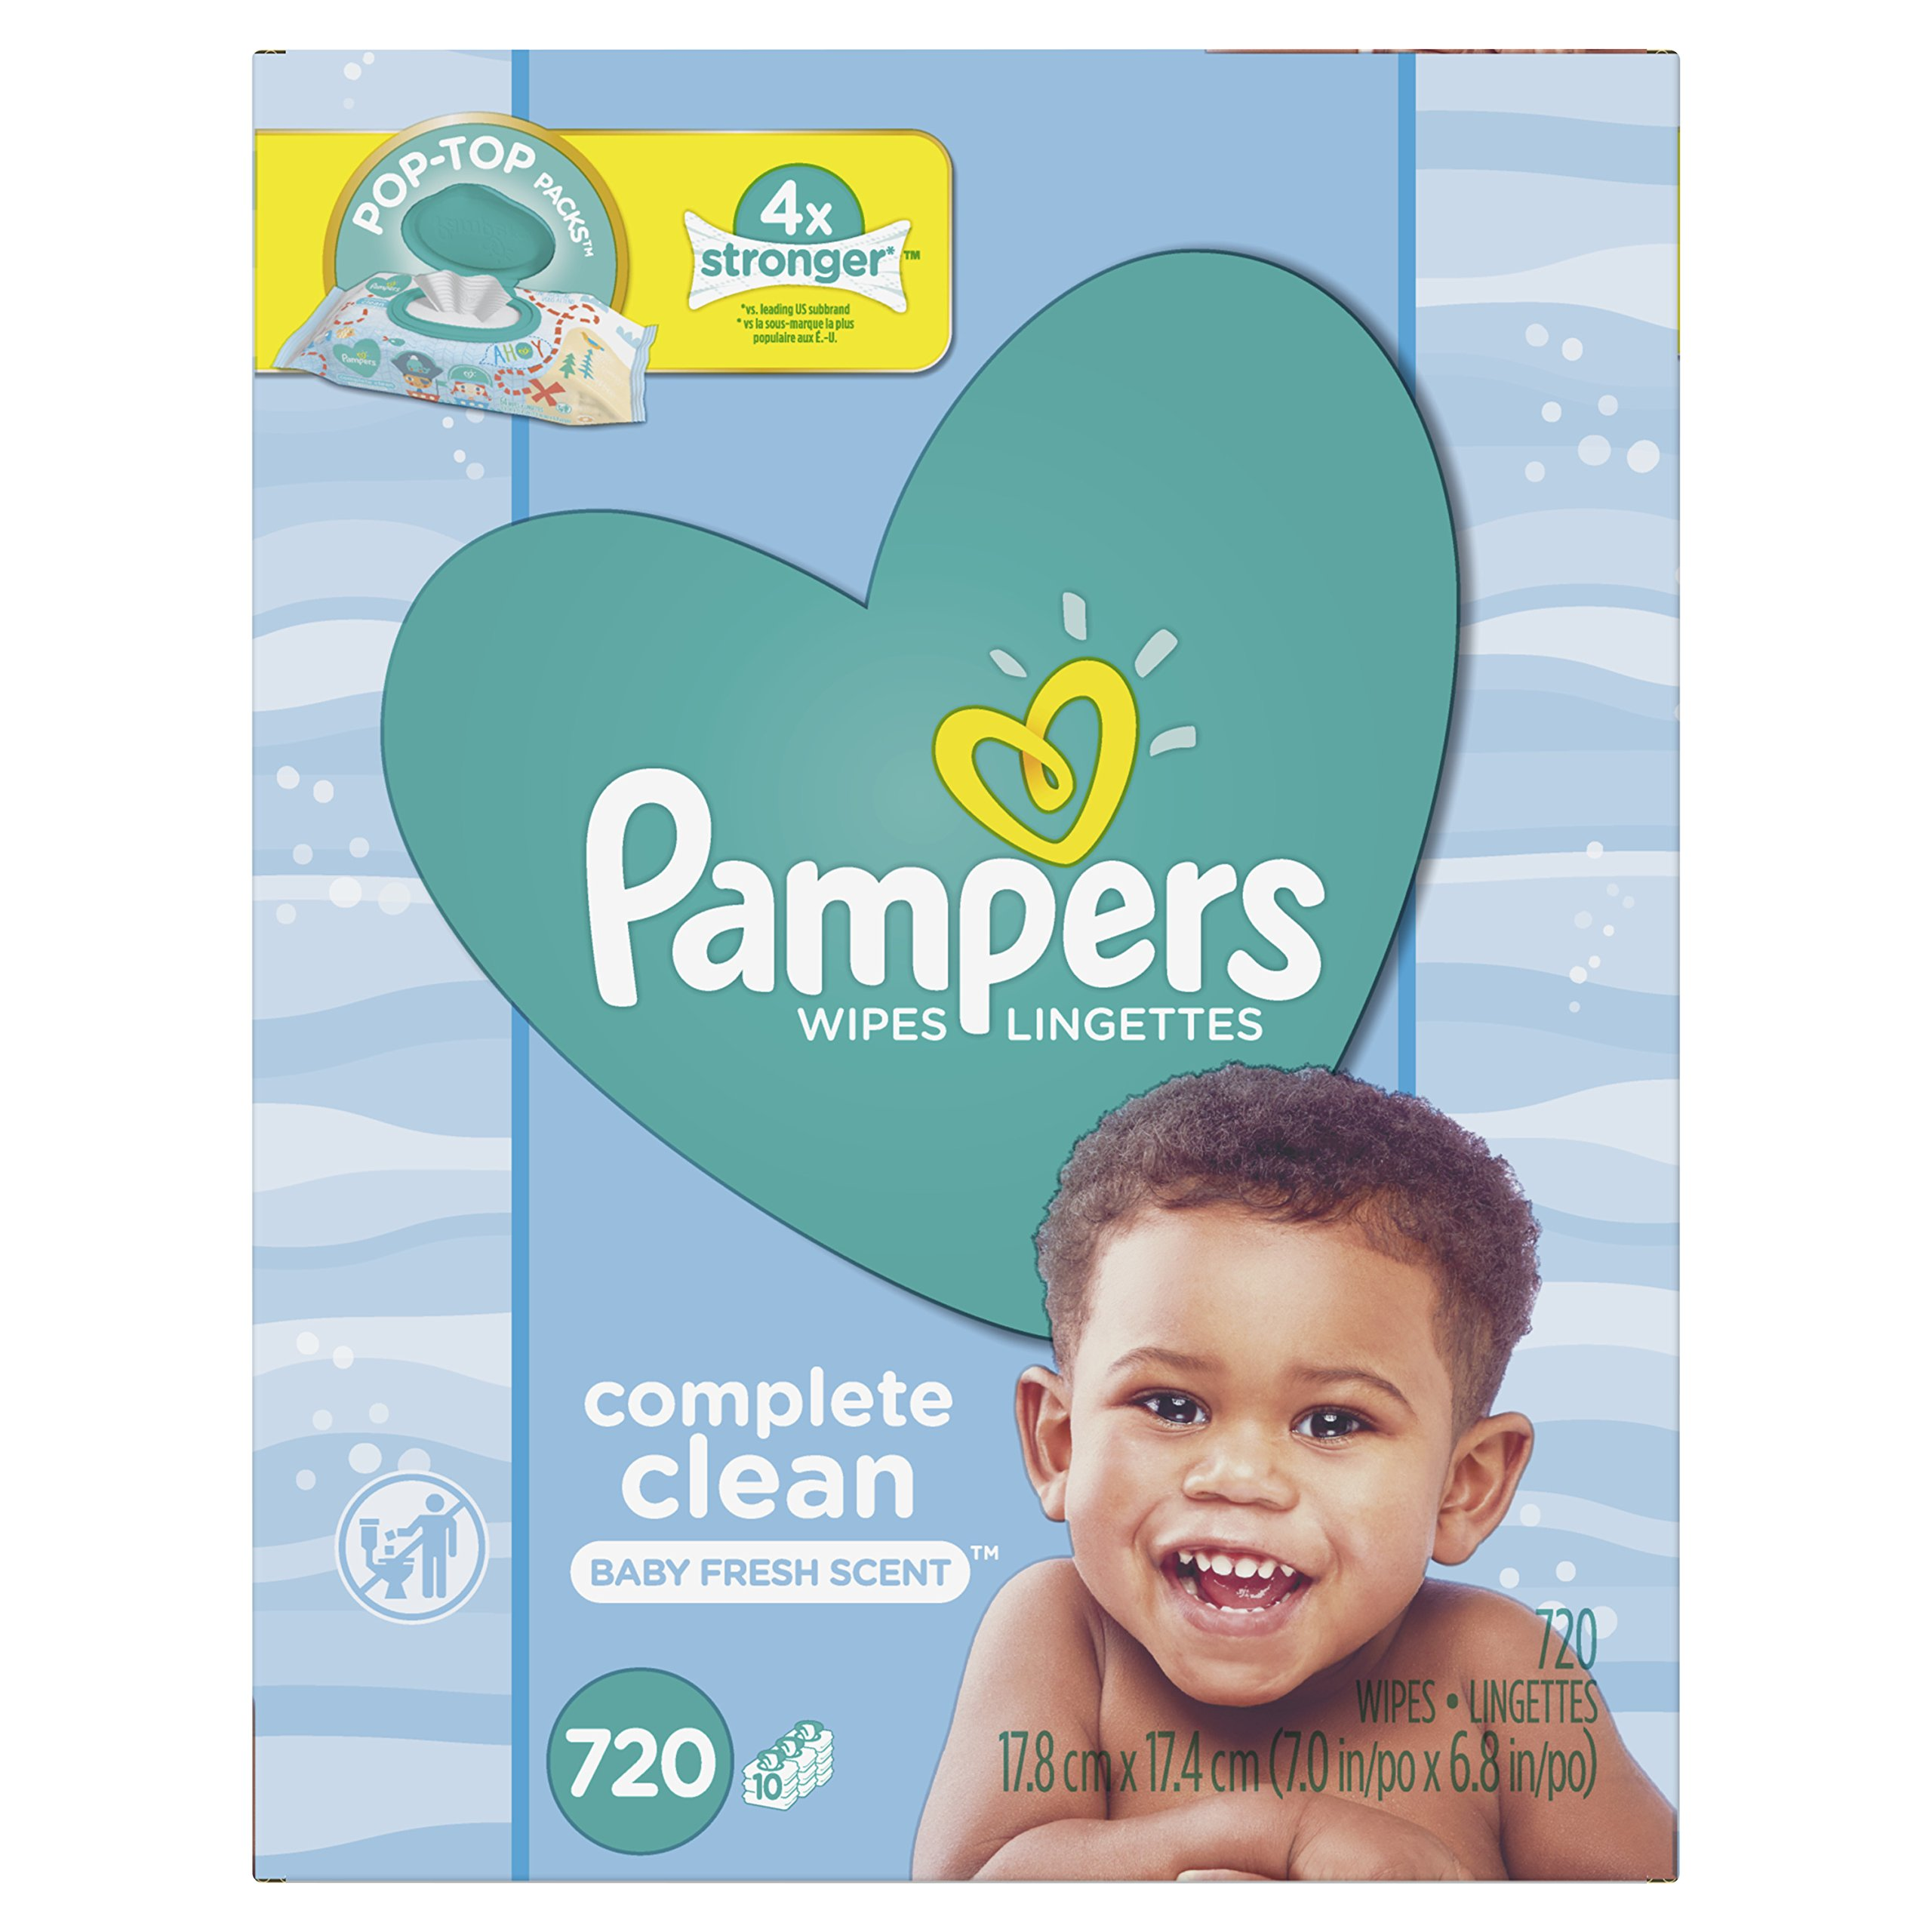 Baby Wipes, Pampers Sensitive Water Baby Diaper Wipes, Complete Clean Scented, 10X Pop-Top Packs, 720 Total Wipes by Pampers